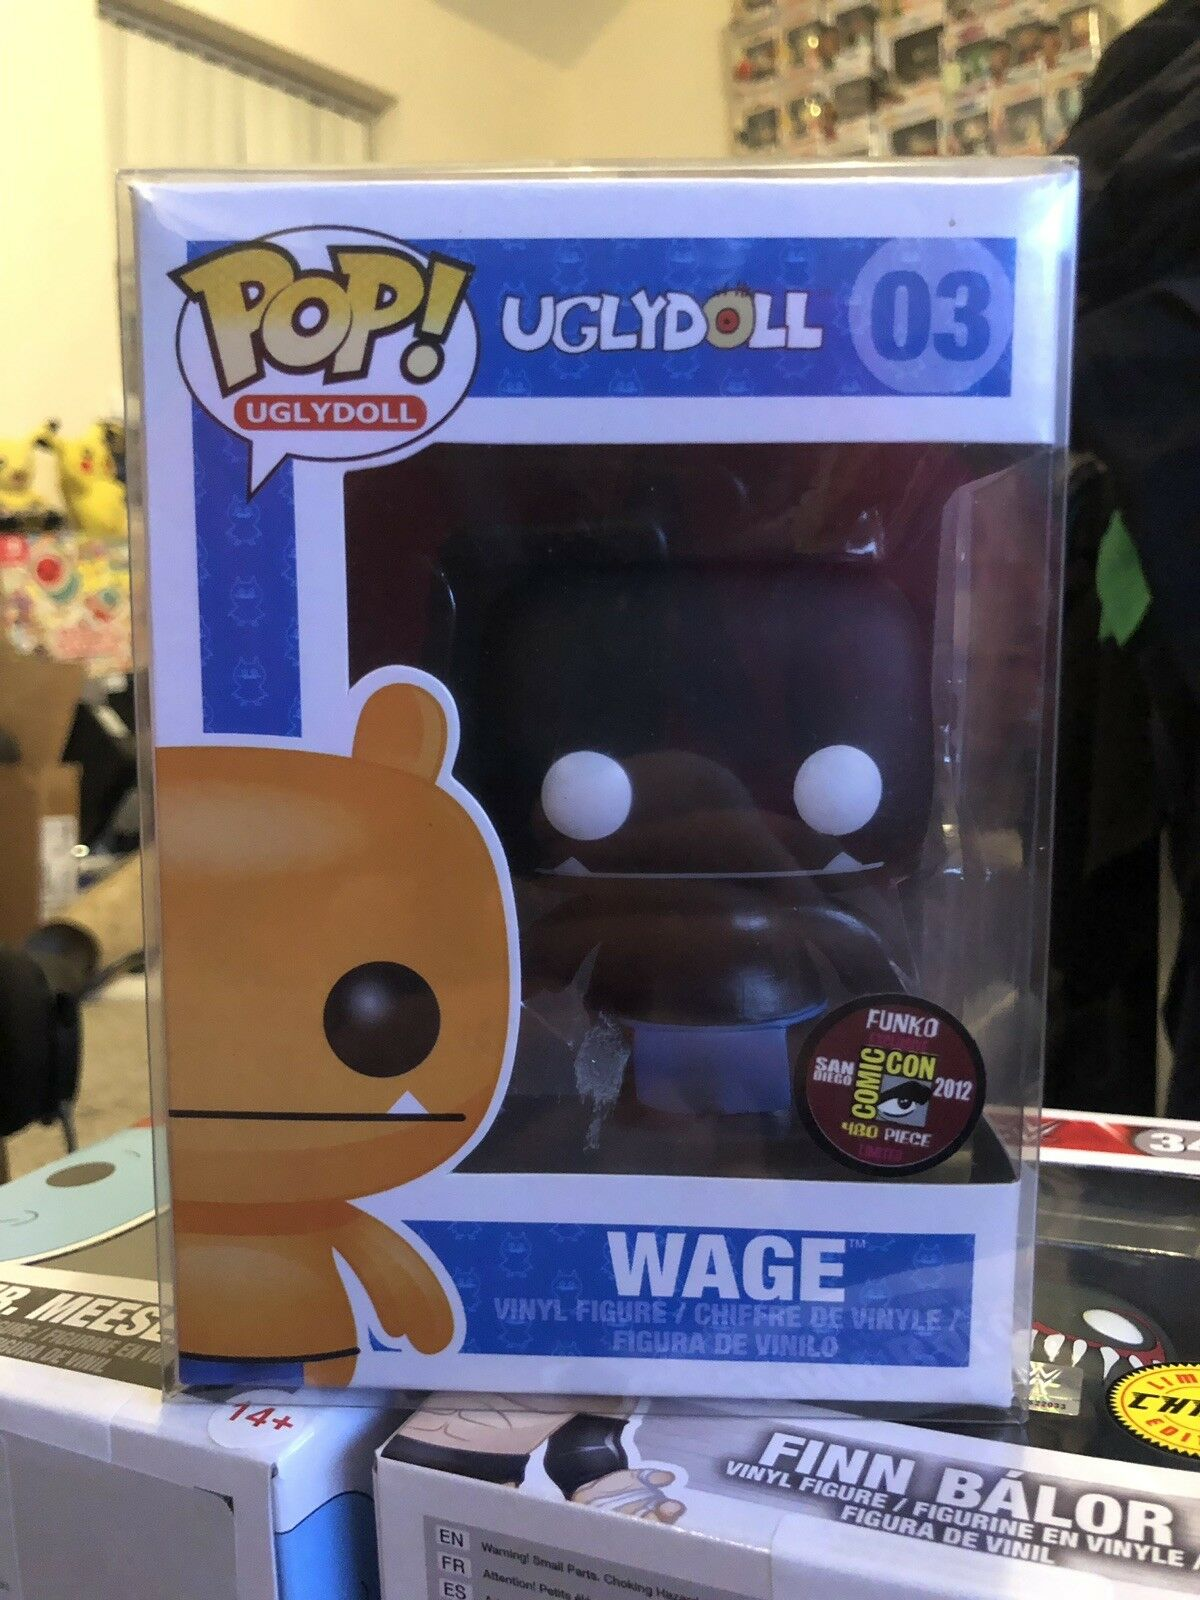 Ugly Doll Wage Exclusive SDCC